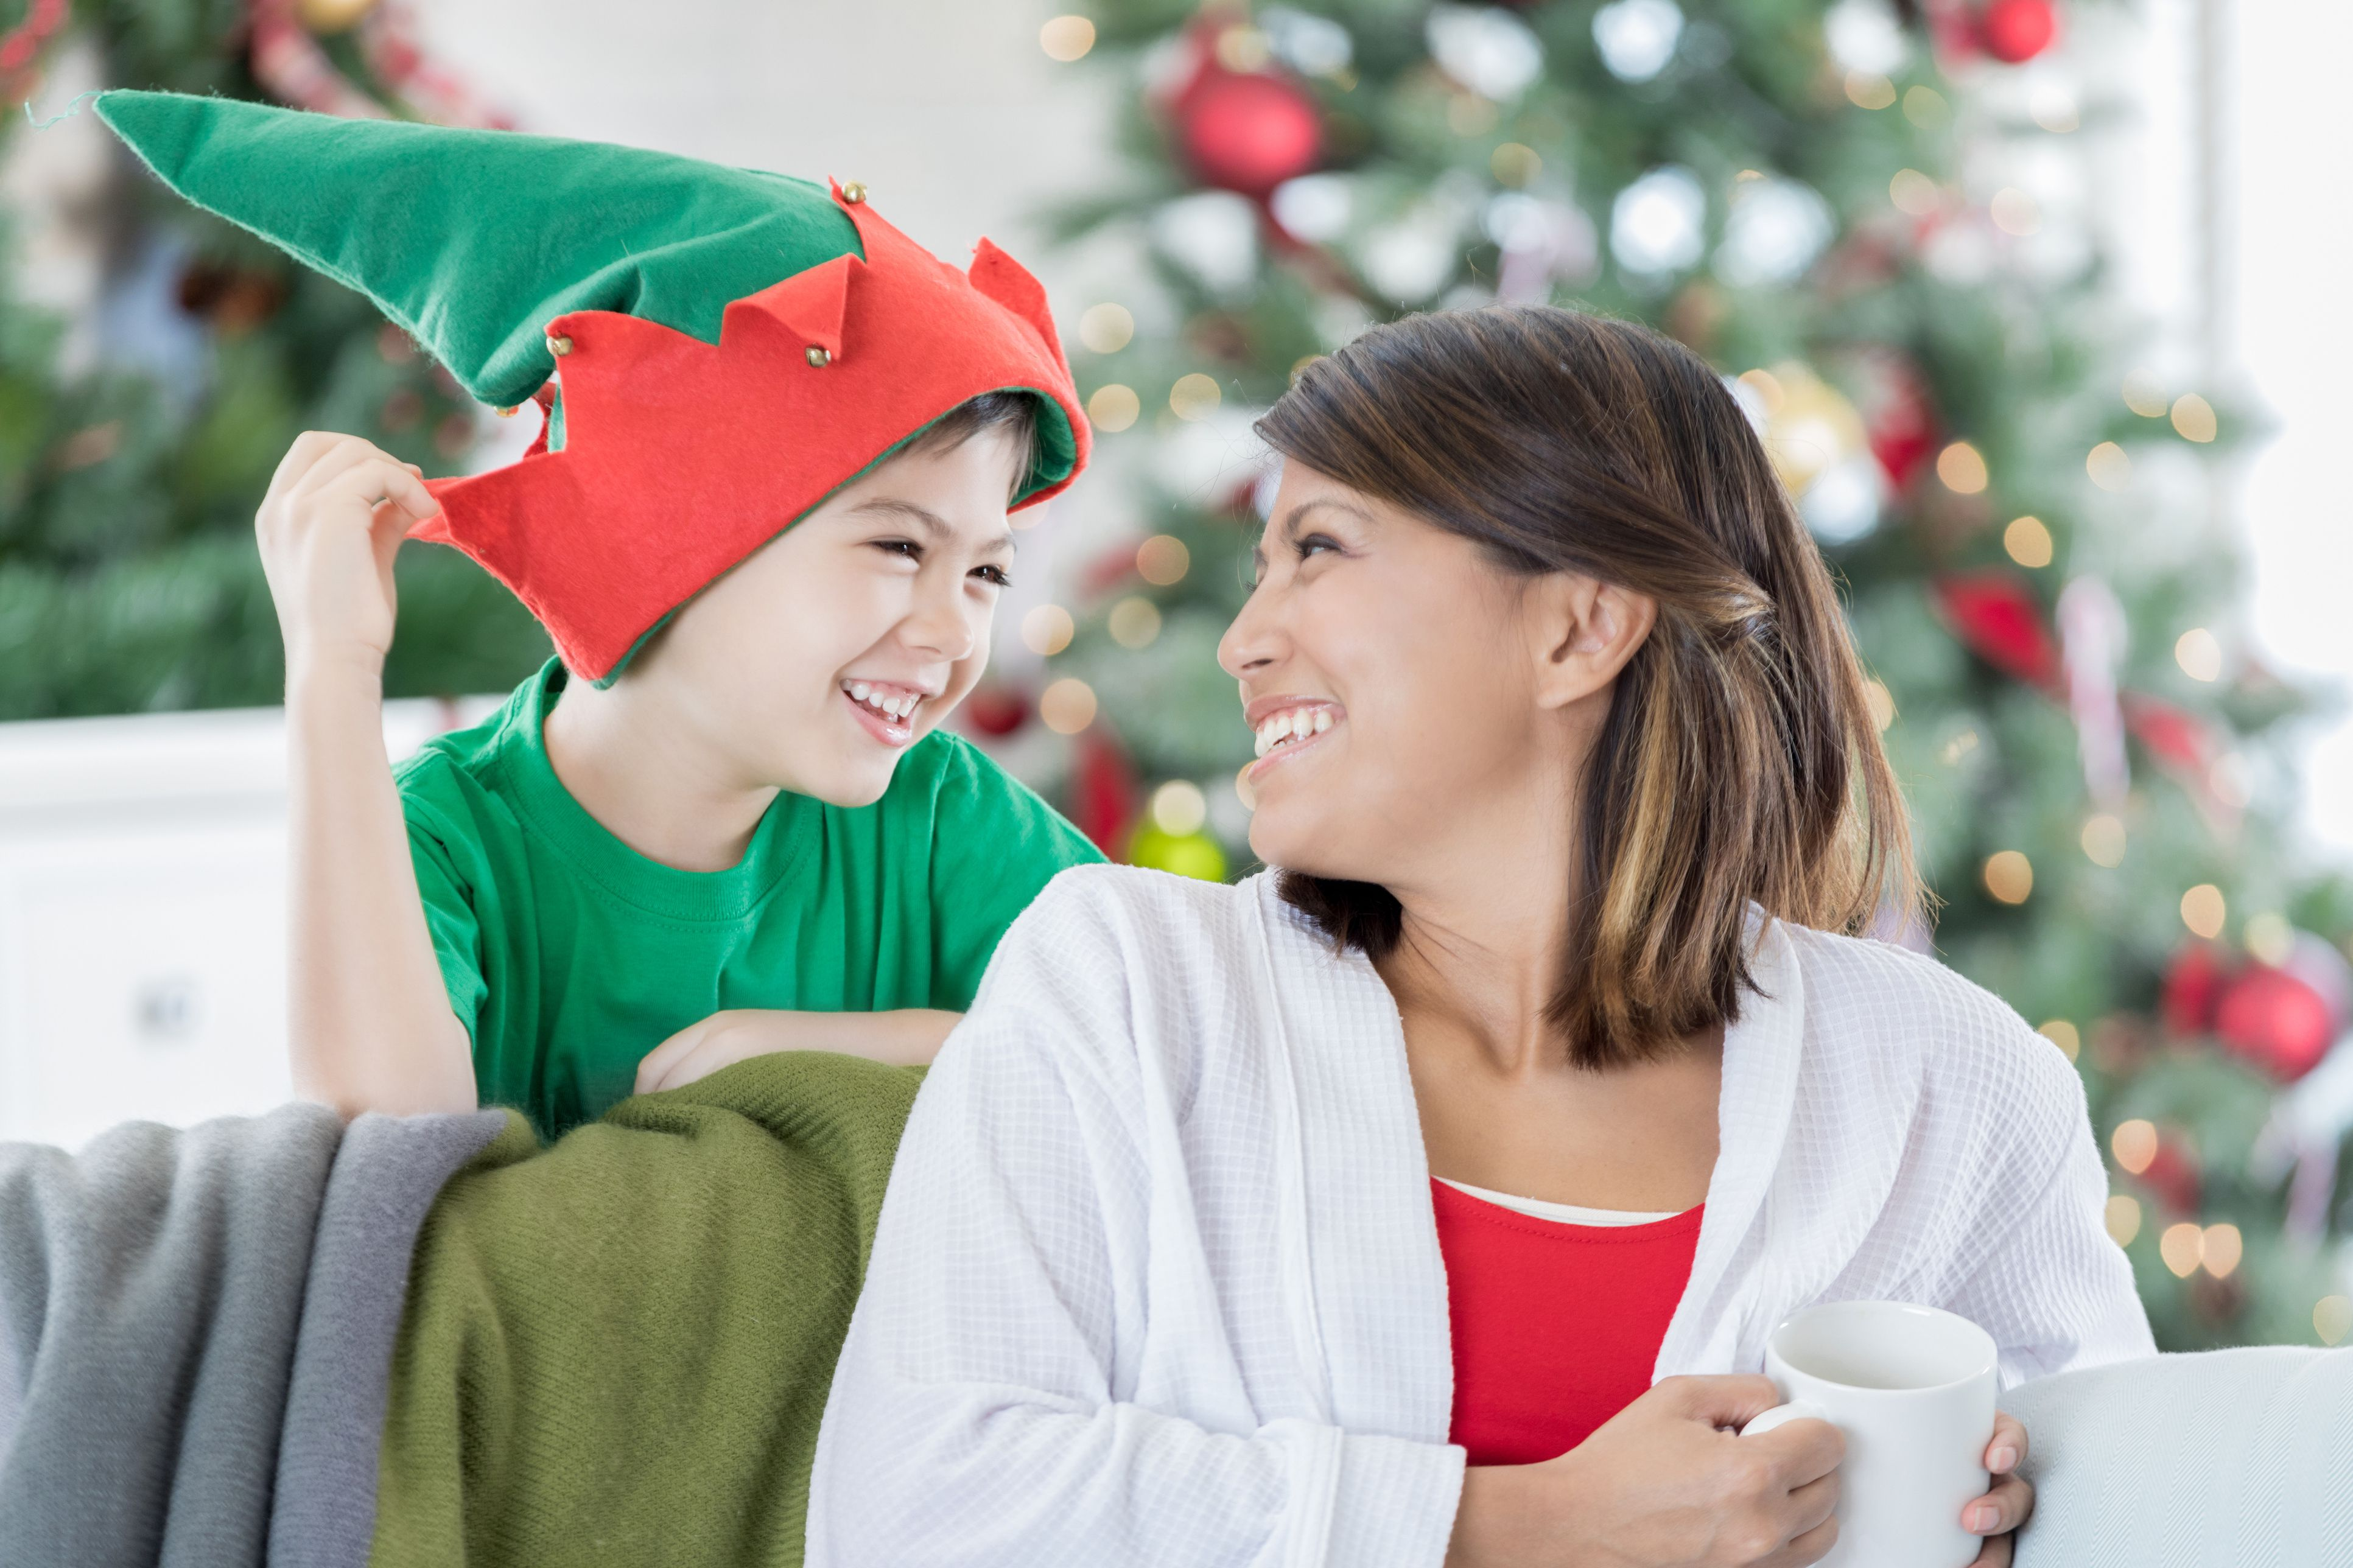 8 Fun and Festive Elf Party Games